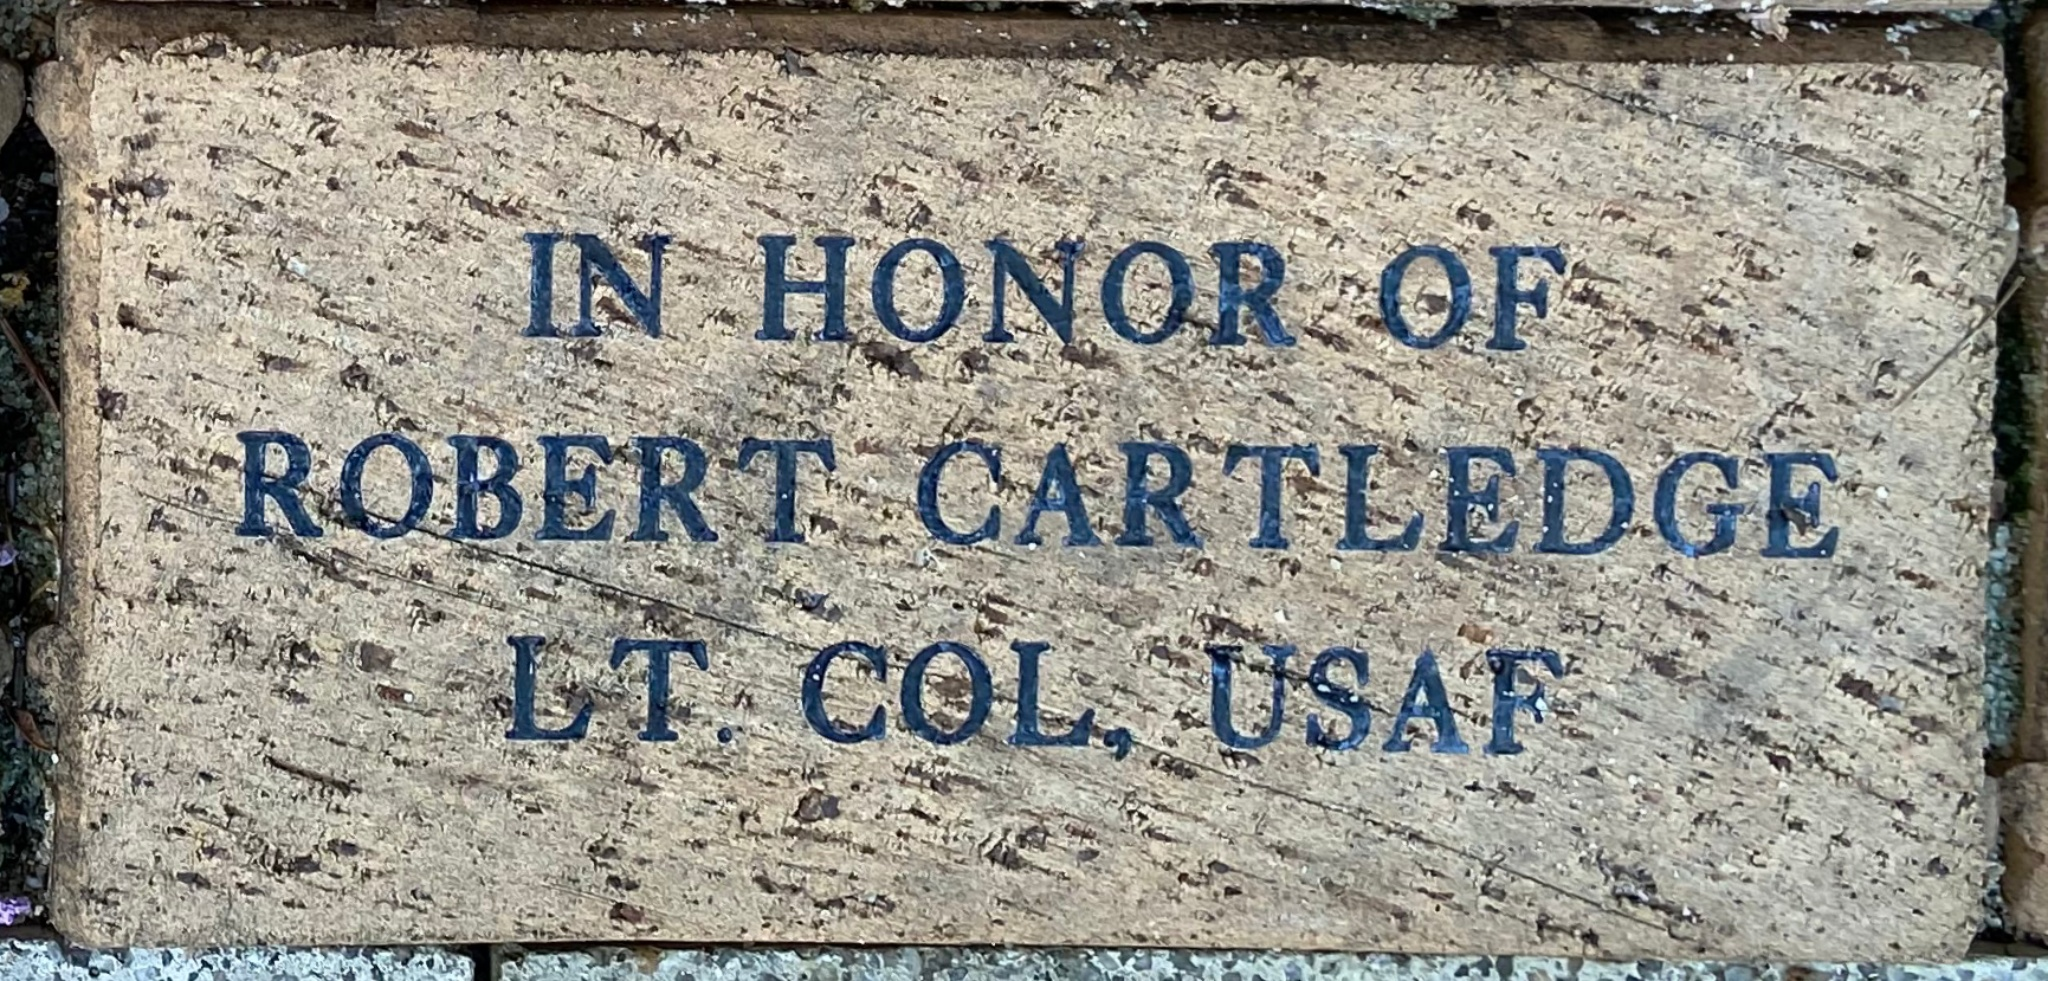 IN HONOR OF ROBERT CARTLEDGE LT. COL., USAF